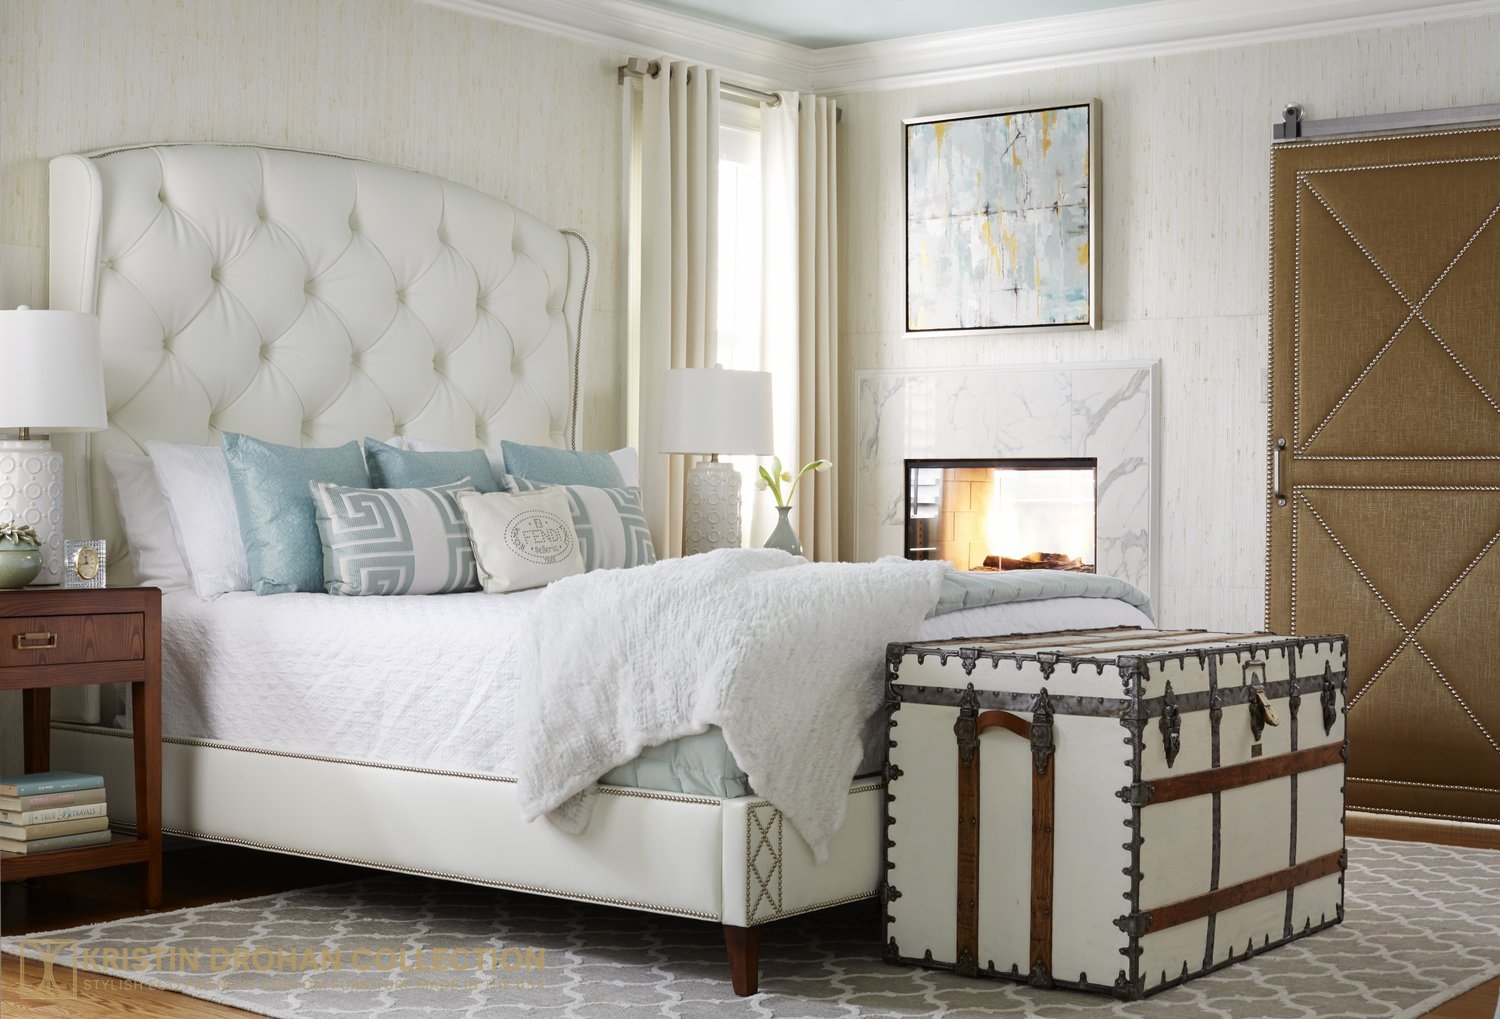 30a Design Bed And Bath The Kristin Drohan Collection